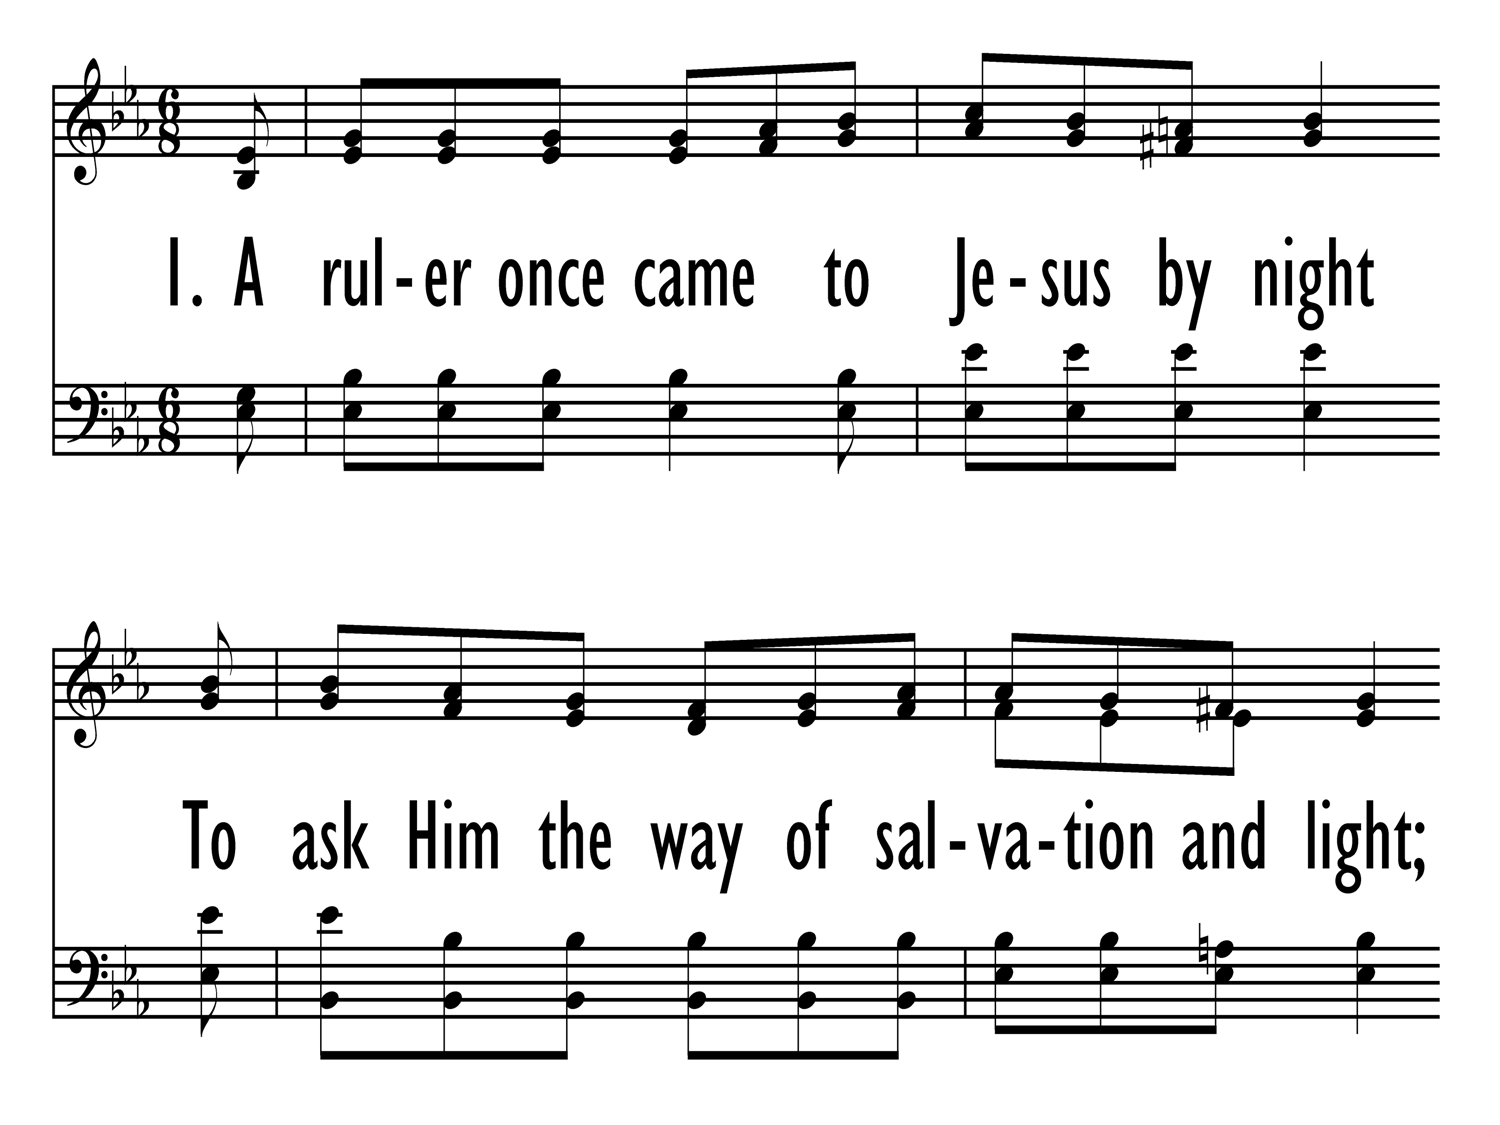 Hymn up from the grave he arose lyrics